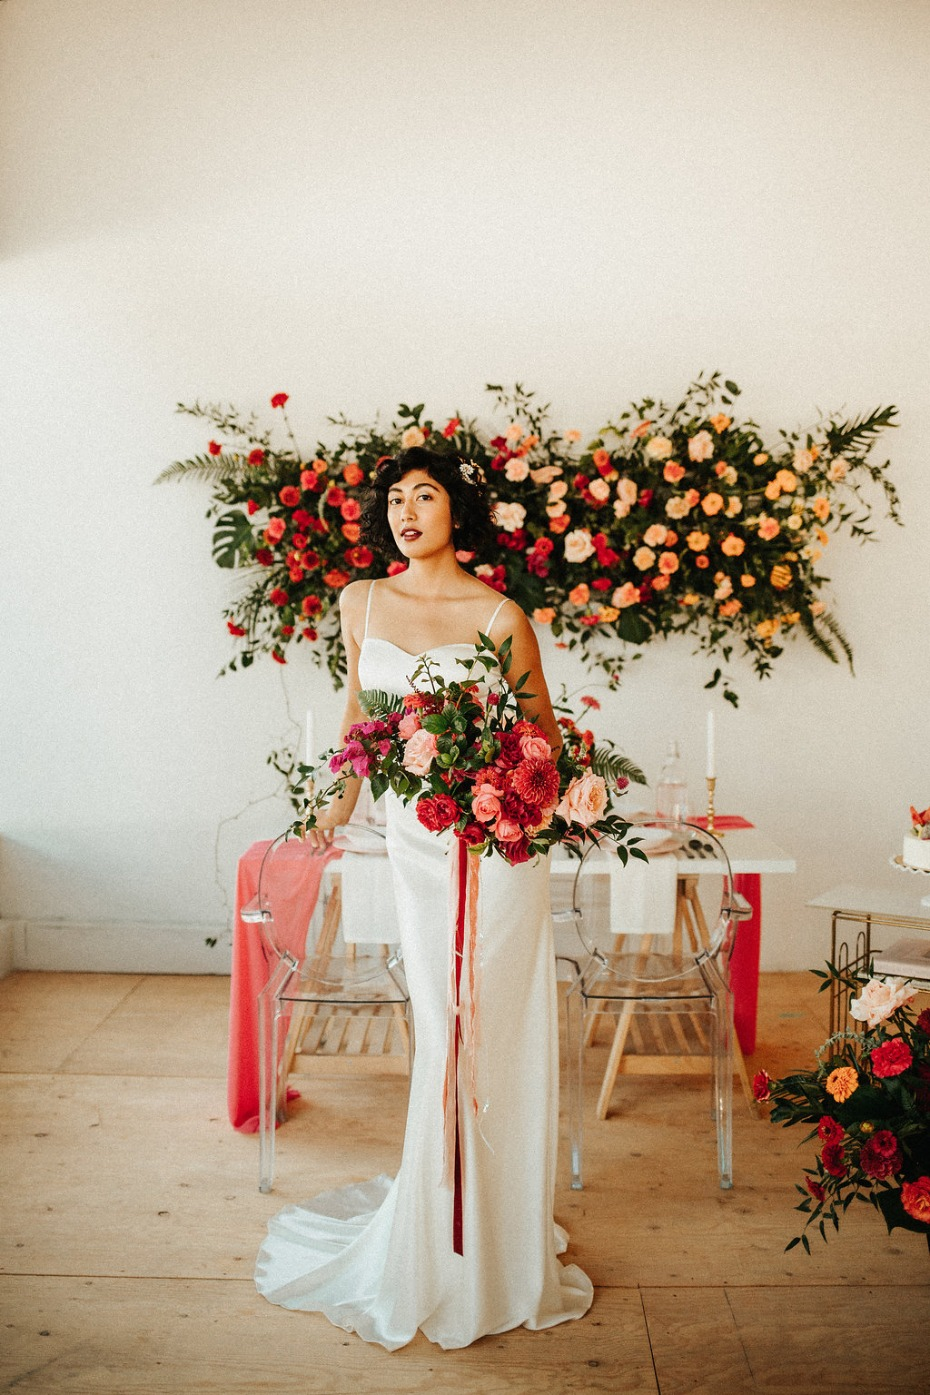 Modern and colorful wedding ideas